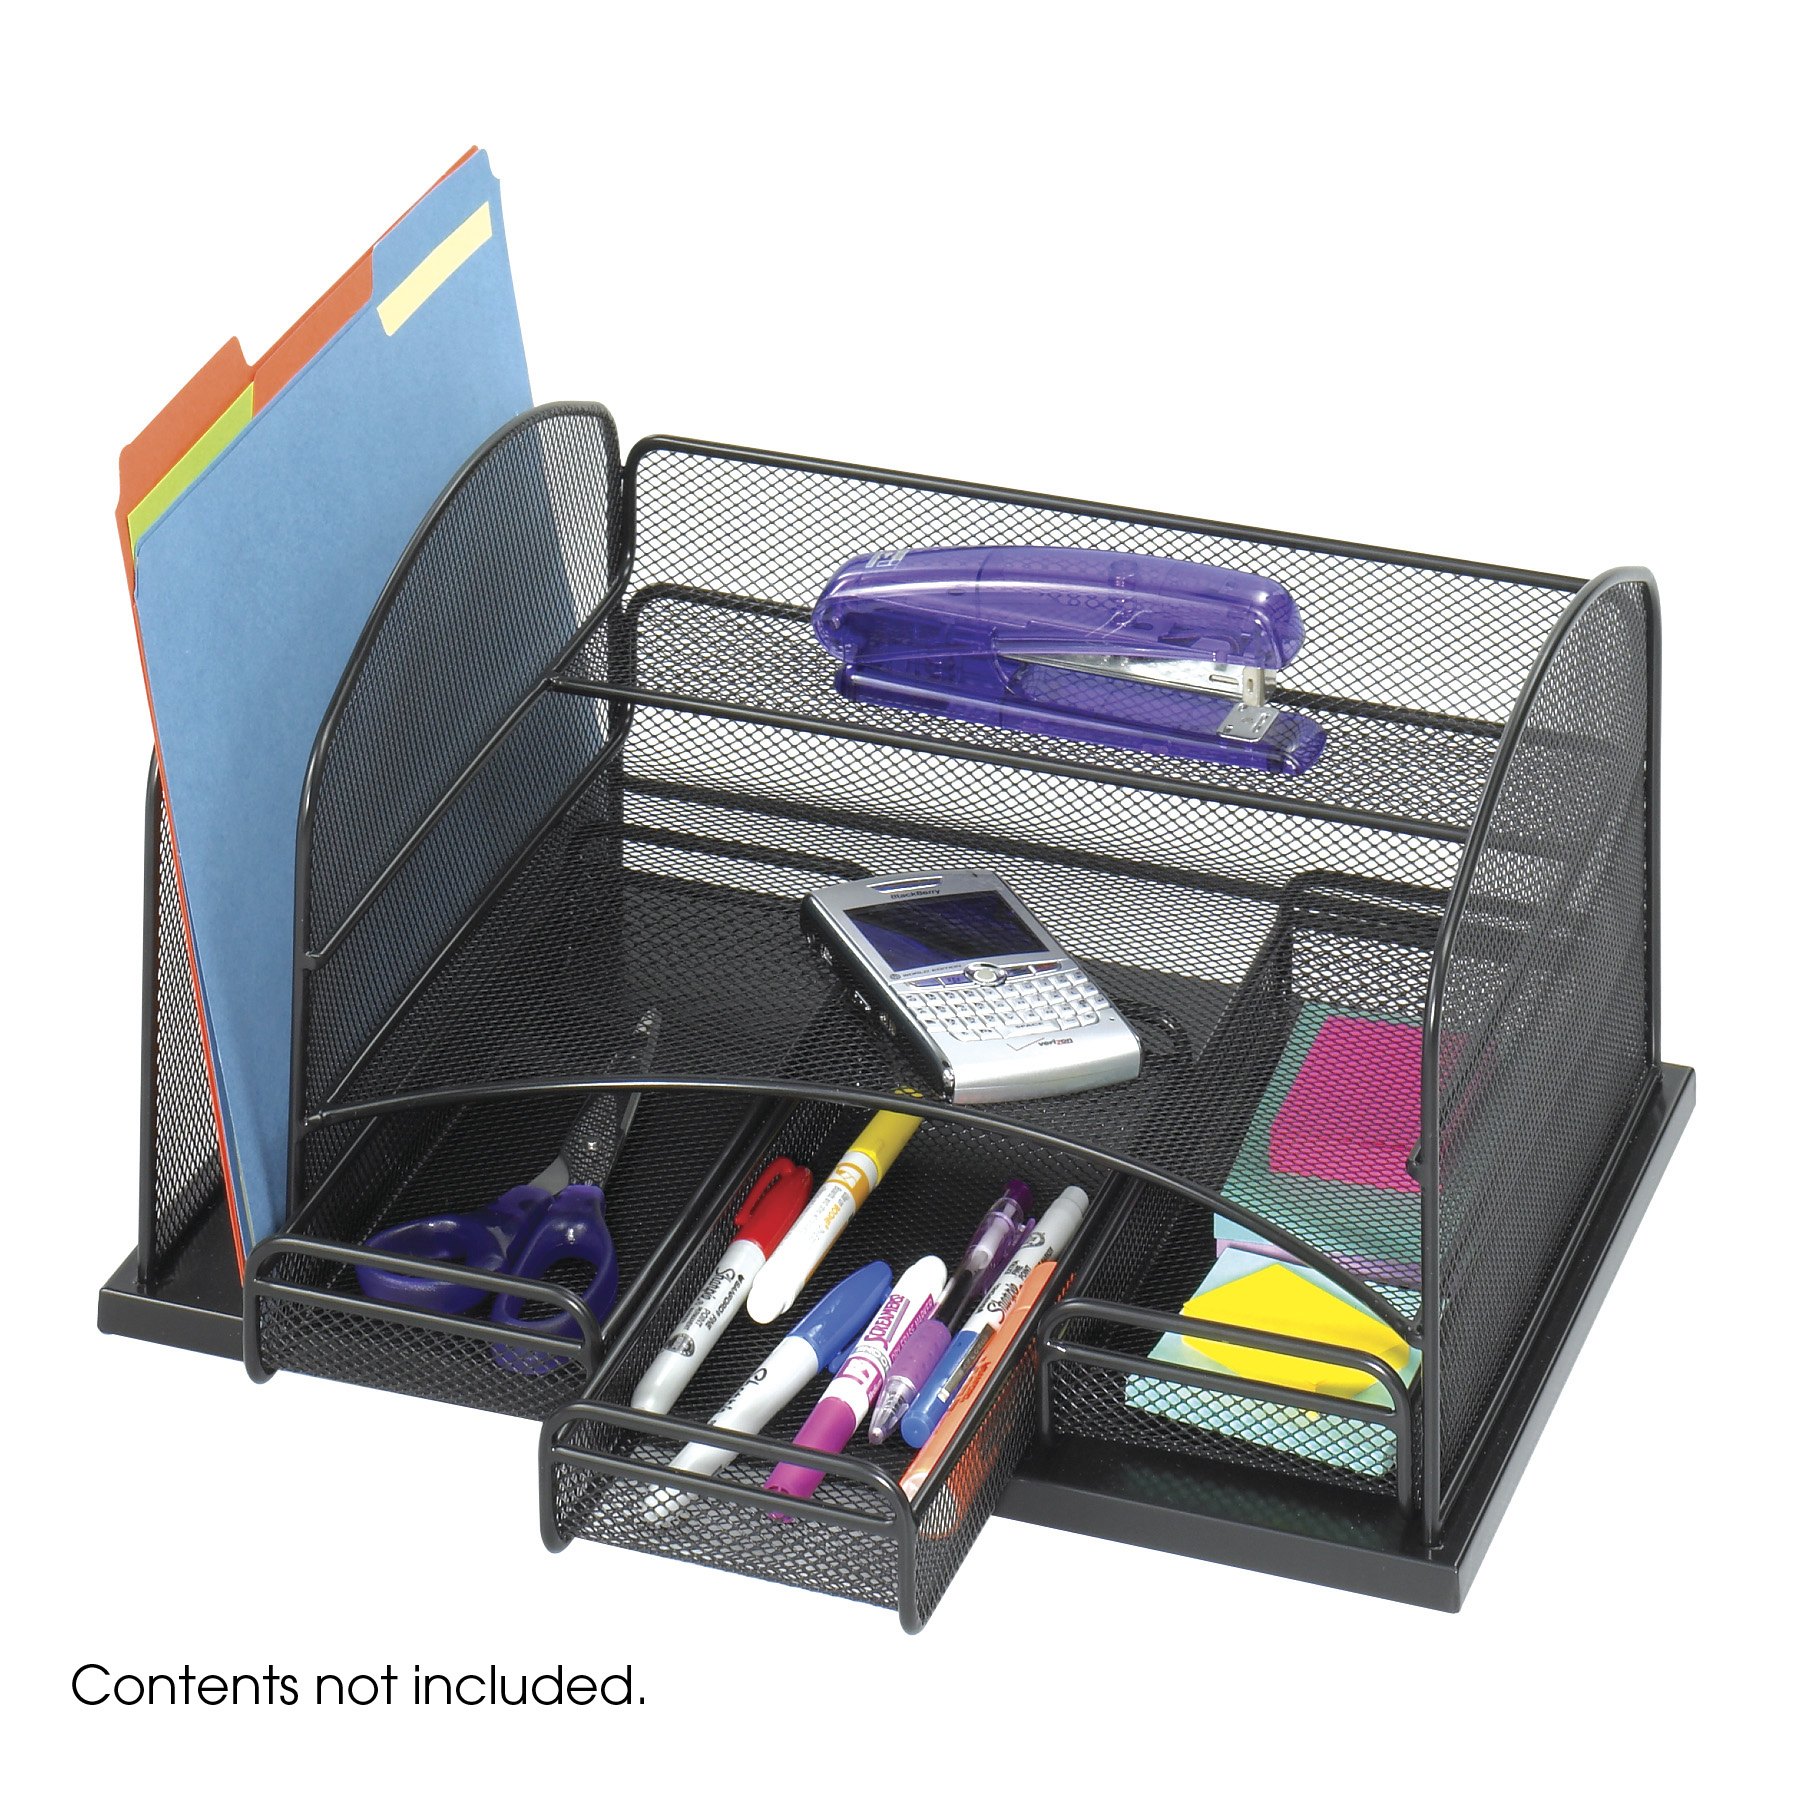 Onyx Mesh Desktop Organizer with 3 Drawers